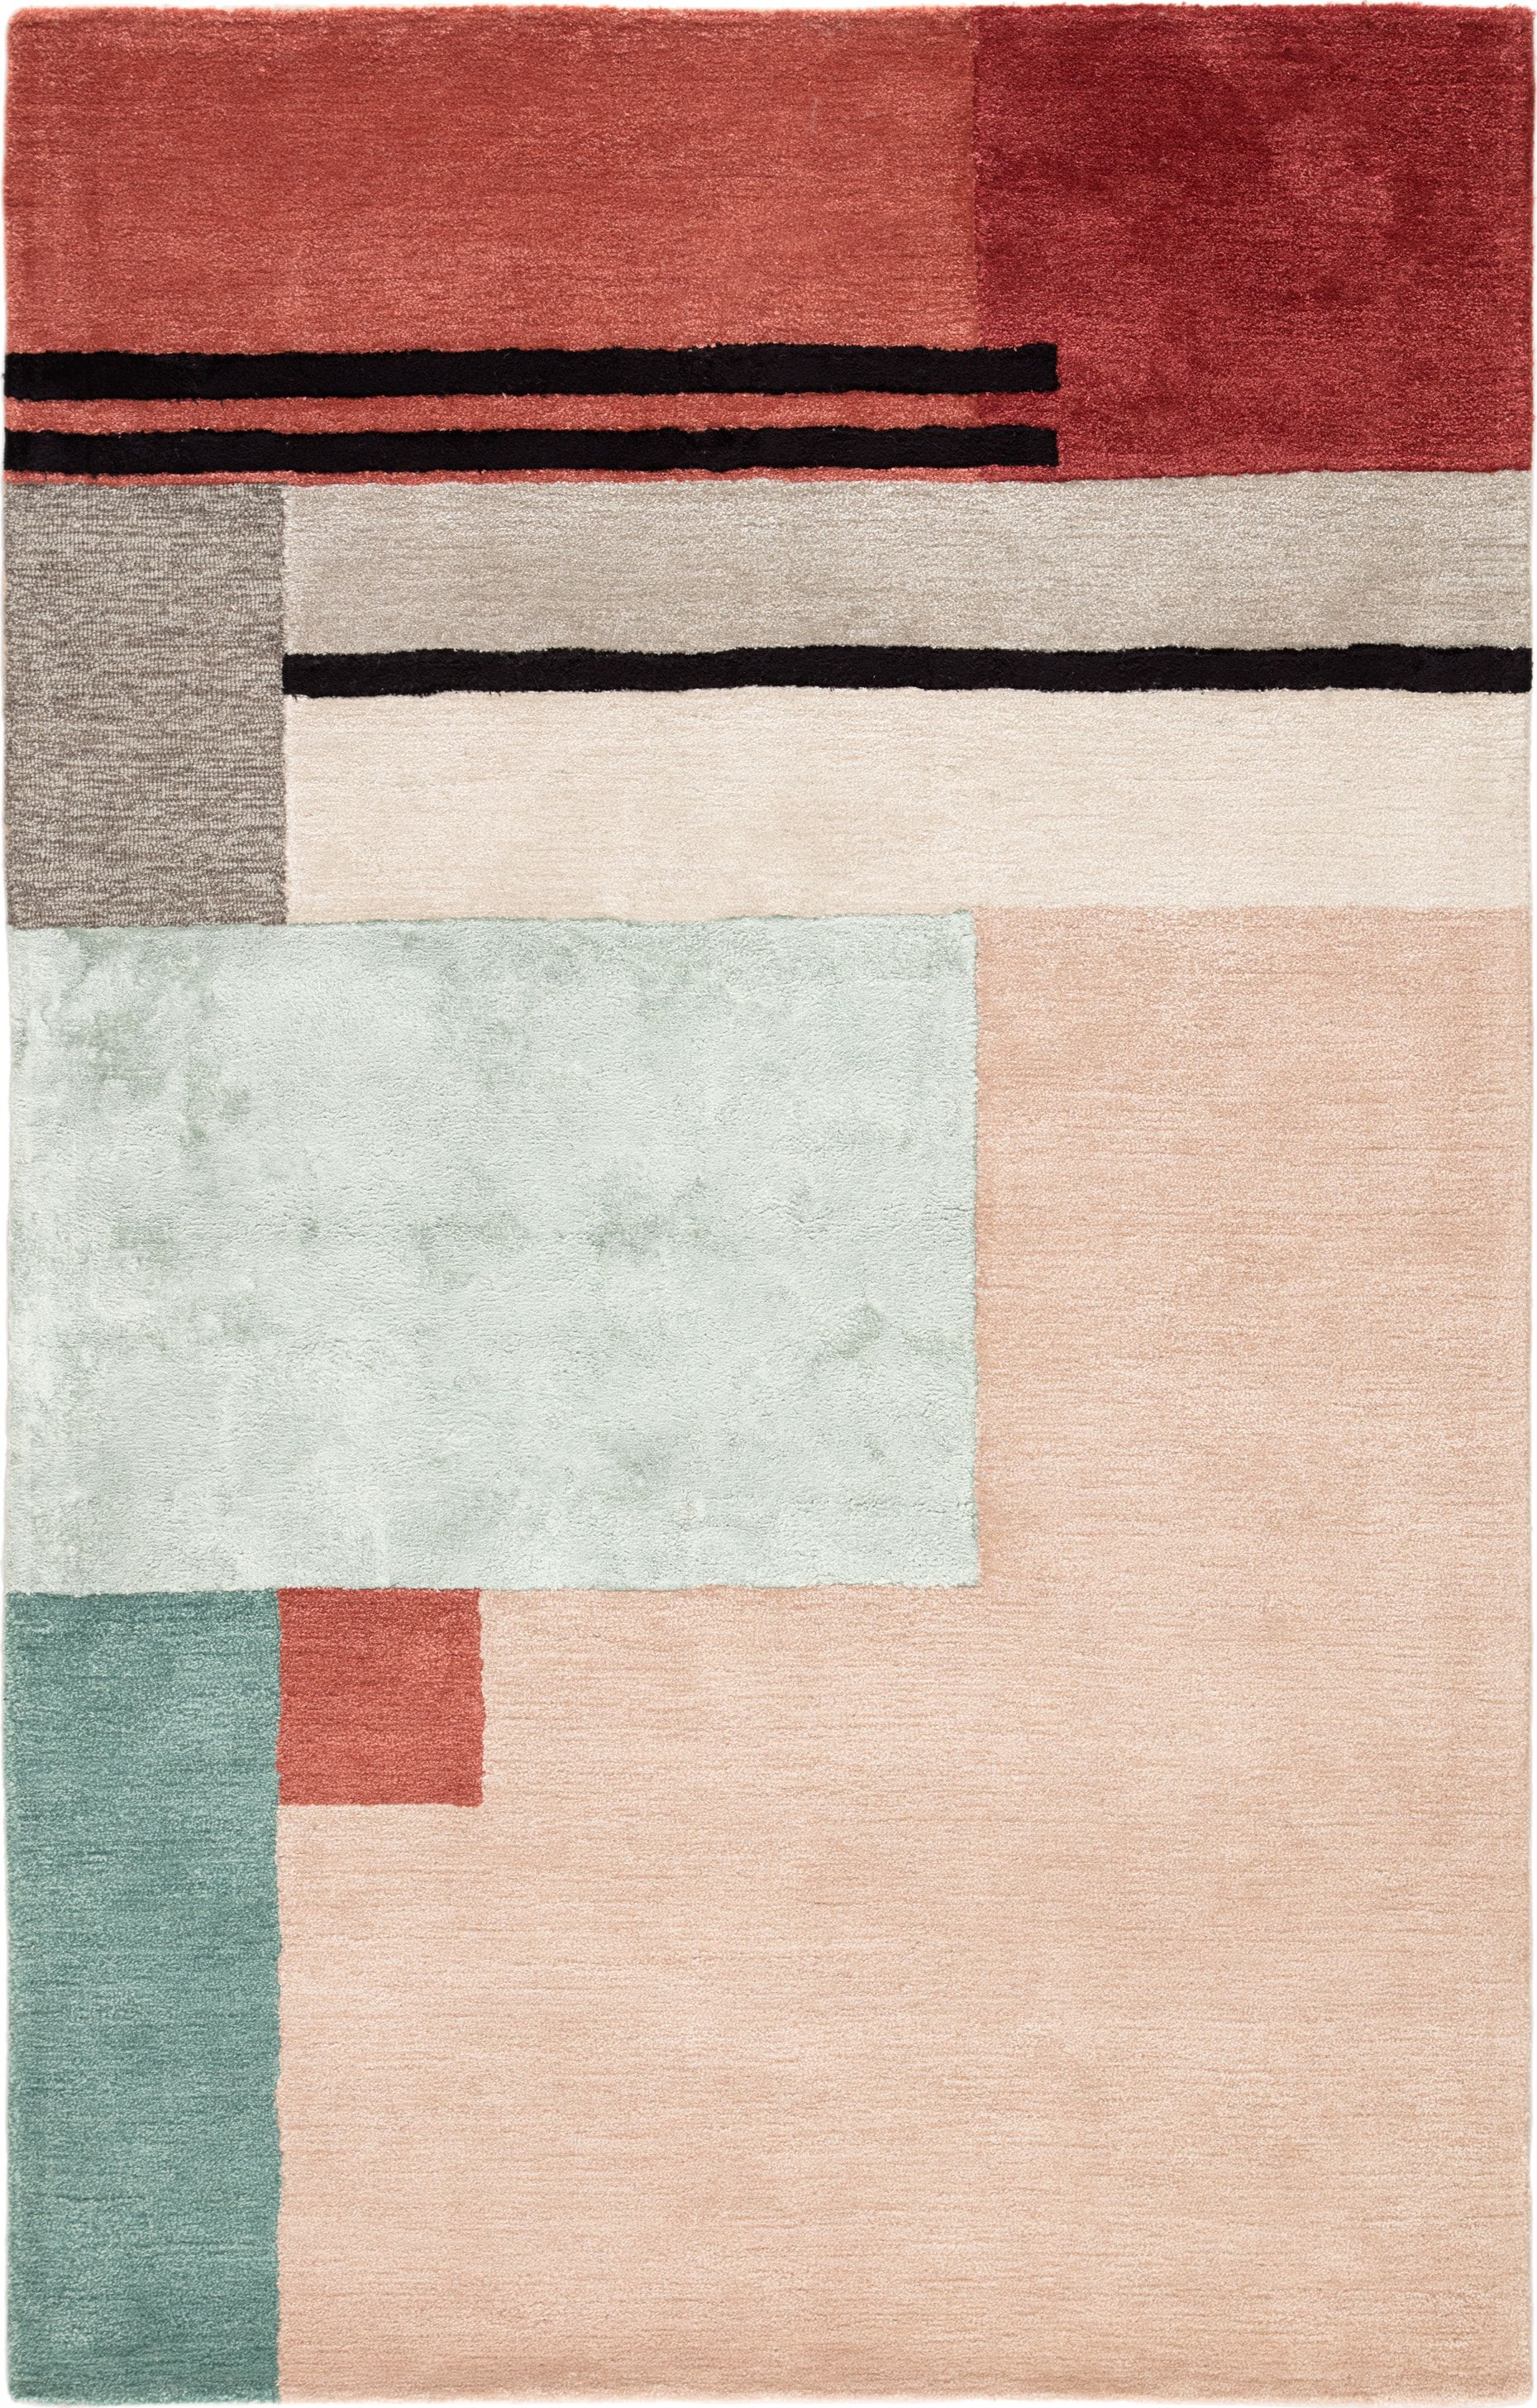 Segment Color Pink Red Size 7 10 X 10 10 Rugs On Carpet Area Throw Rugs Hand Tufted Rugs